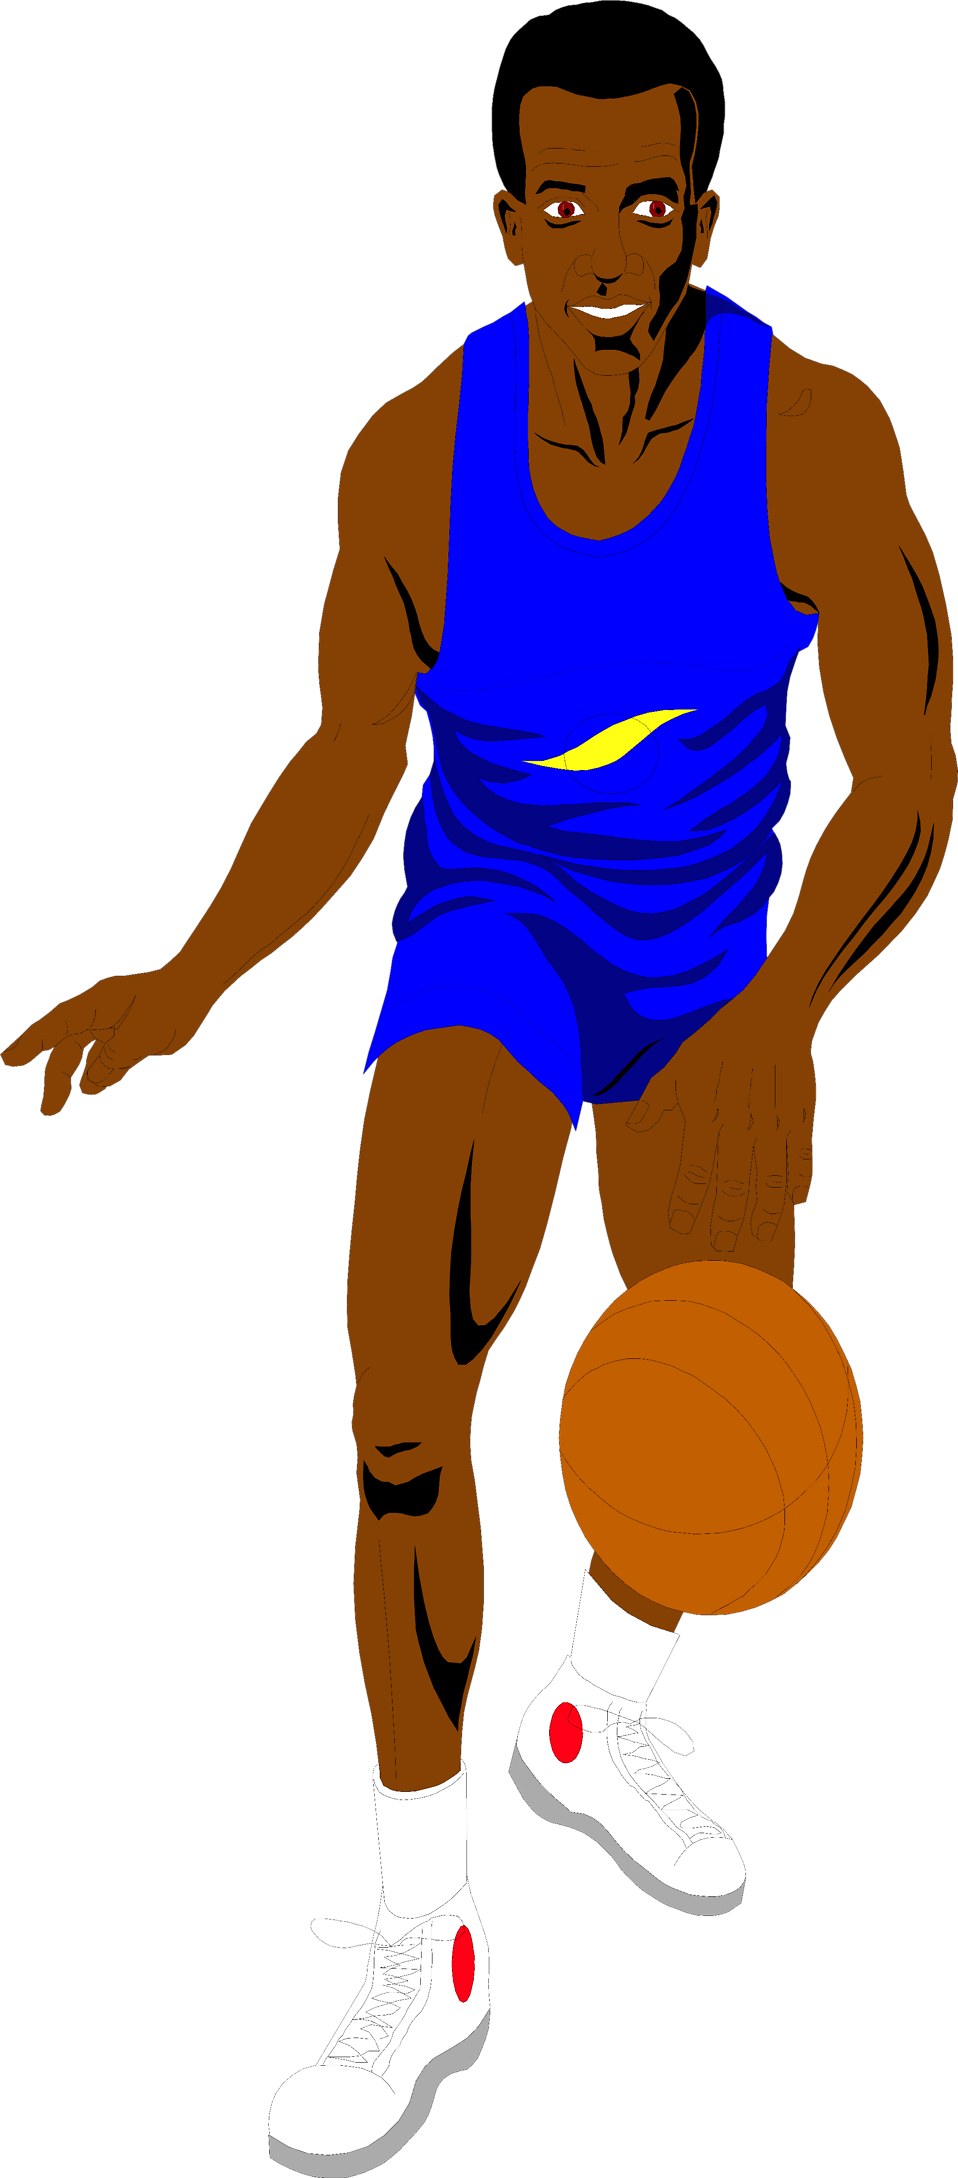 Basketball player dunking clipart clip stock Basketball | Free Stock Photo | Illustration of an African American ... clip stock